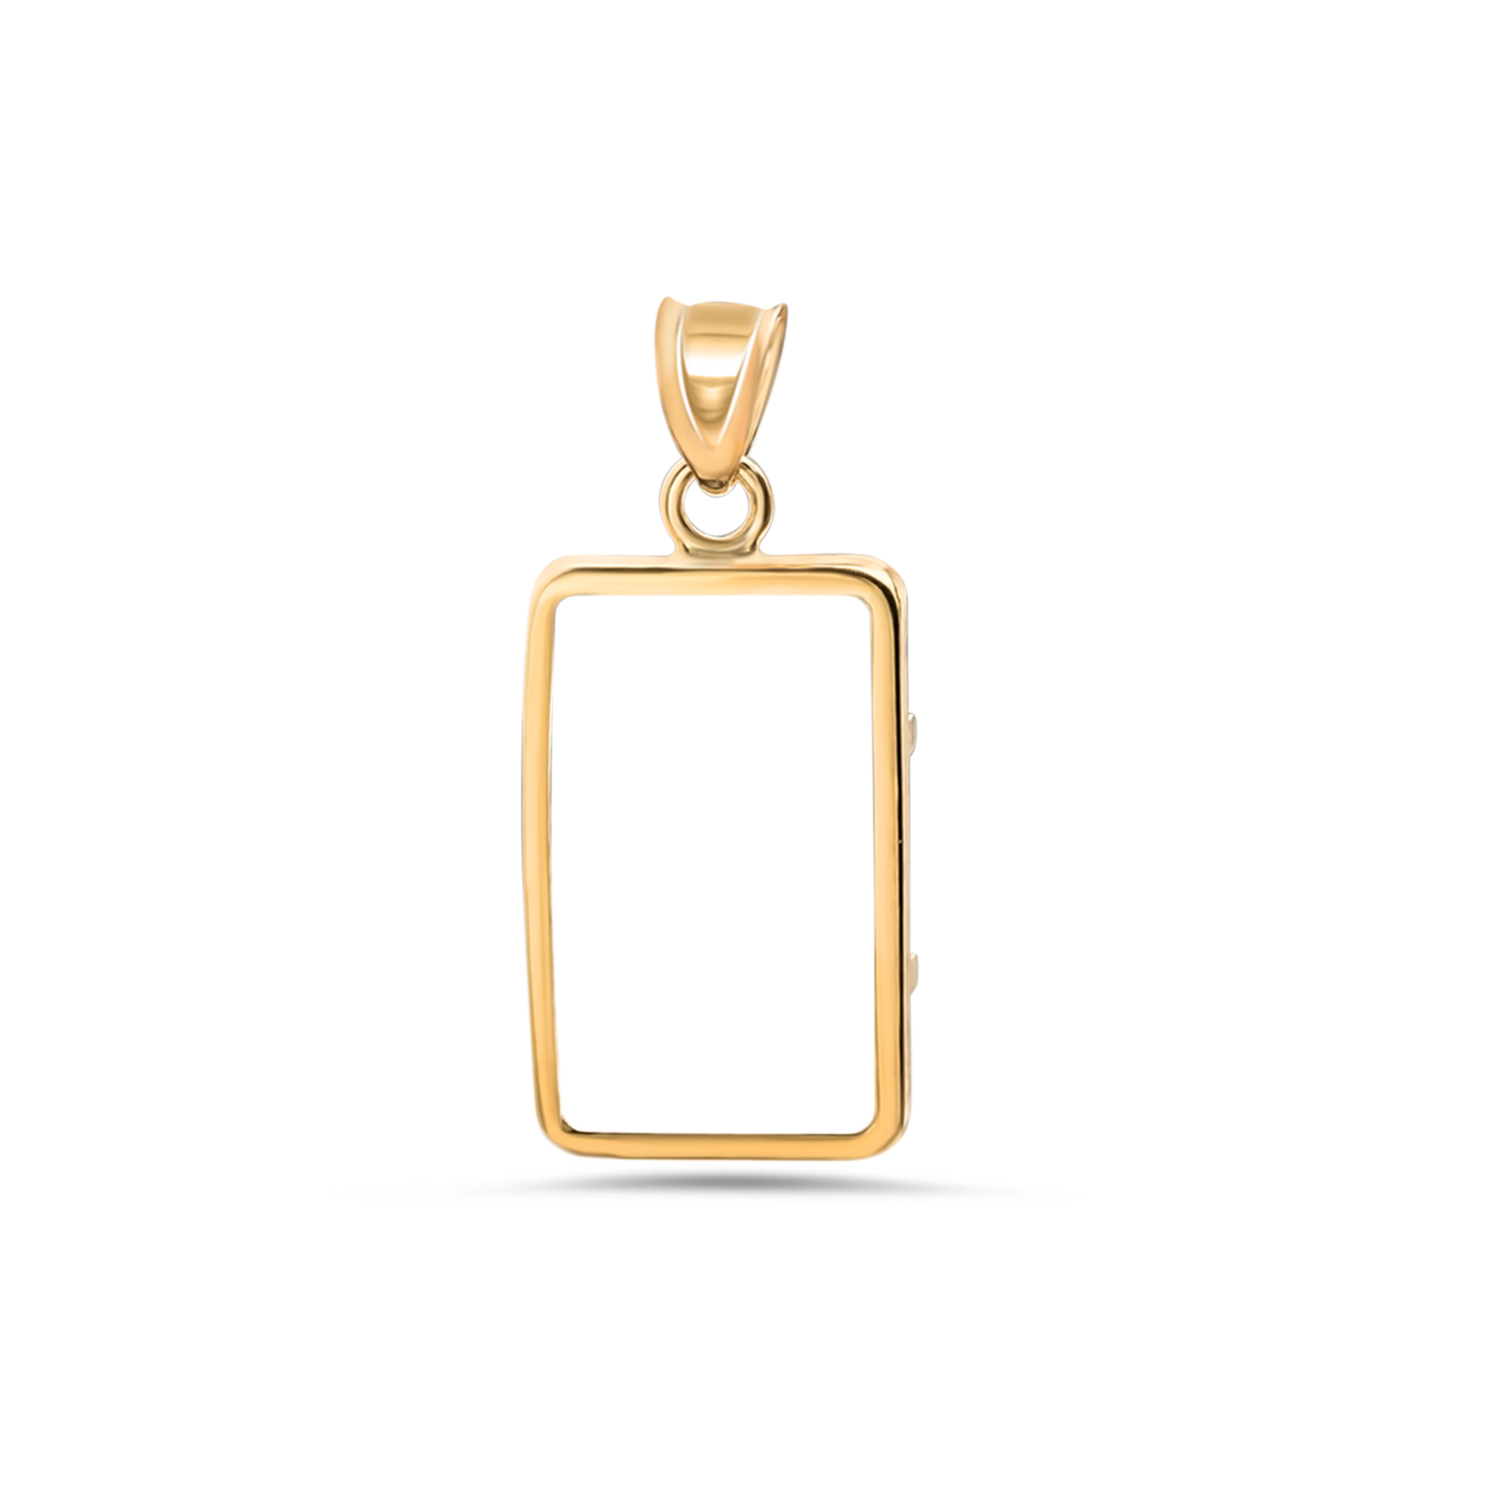 14K Gold Prong Plain-Front Bezel (1 gram PS Gold Bar)